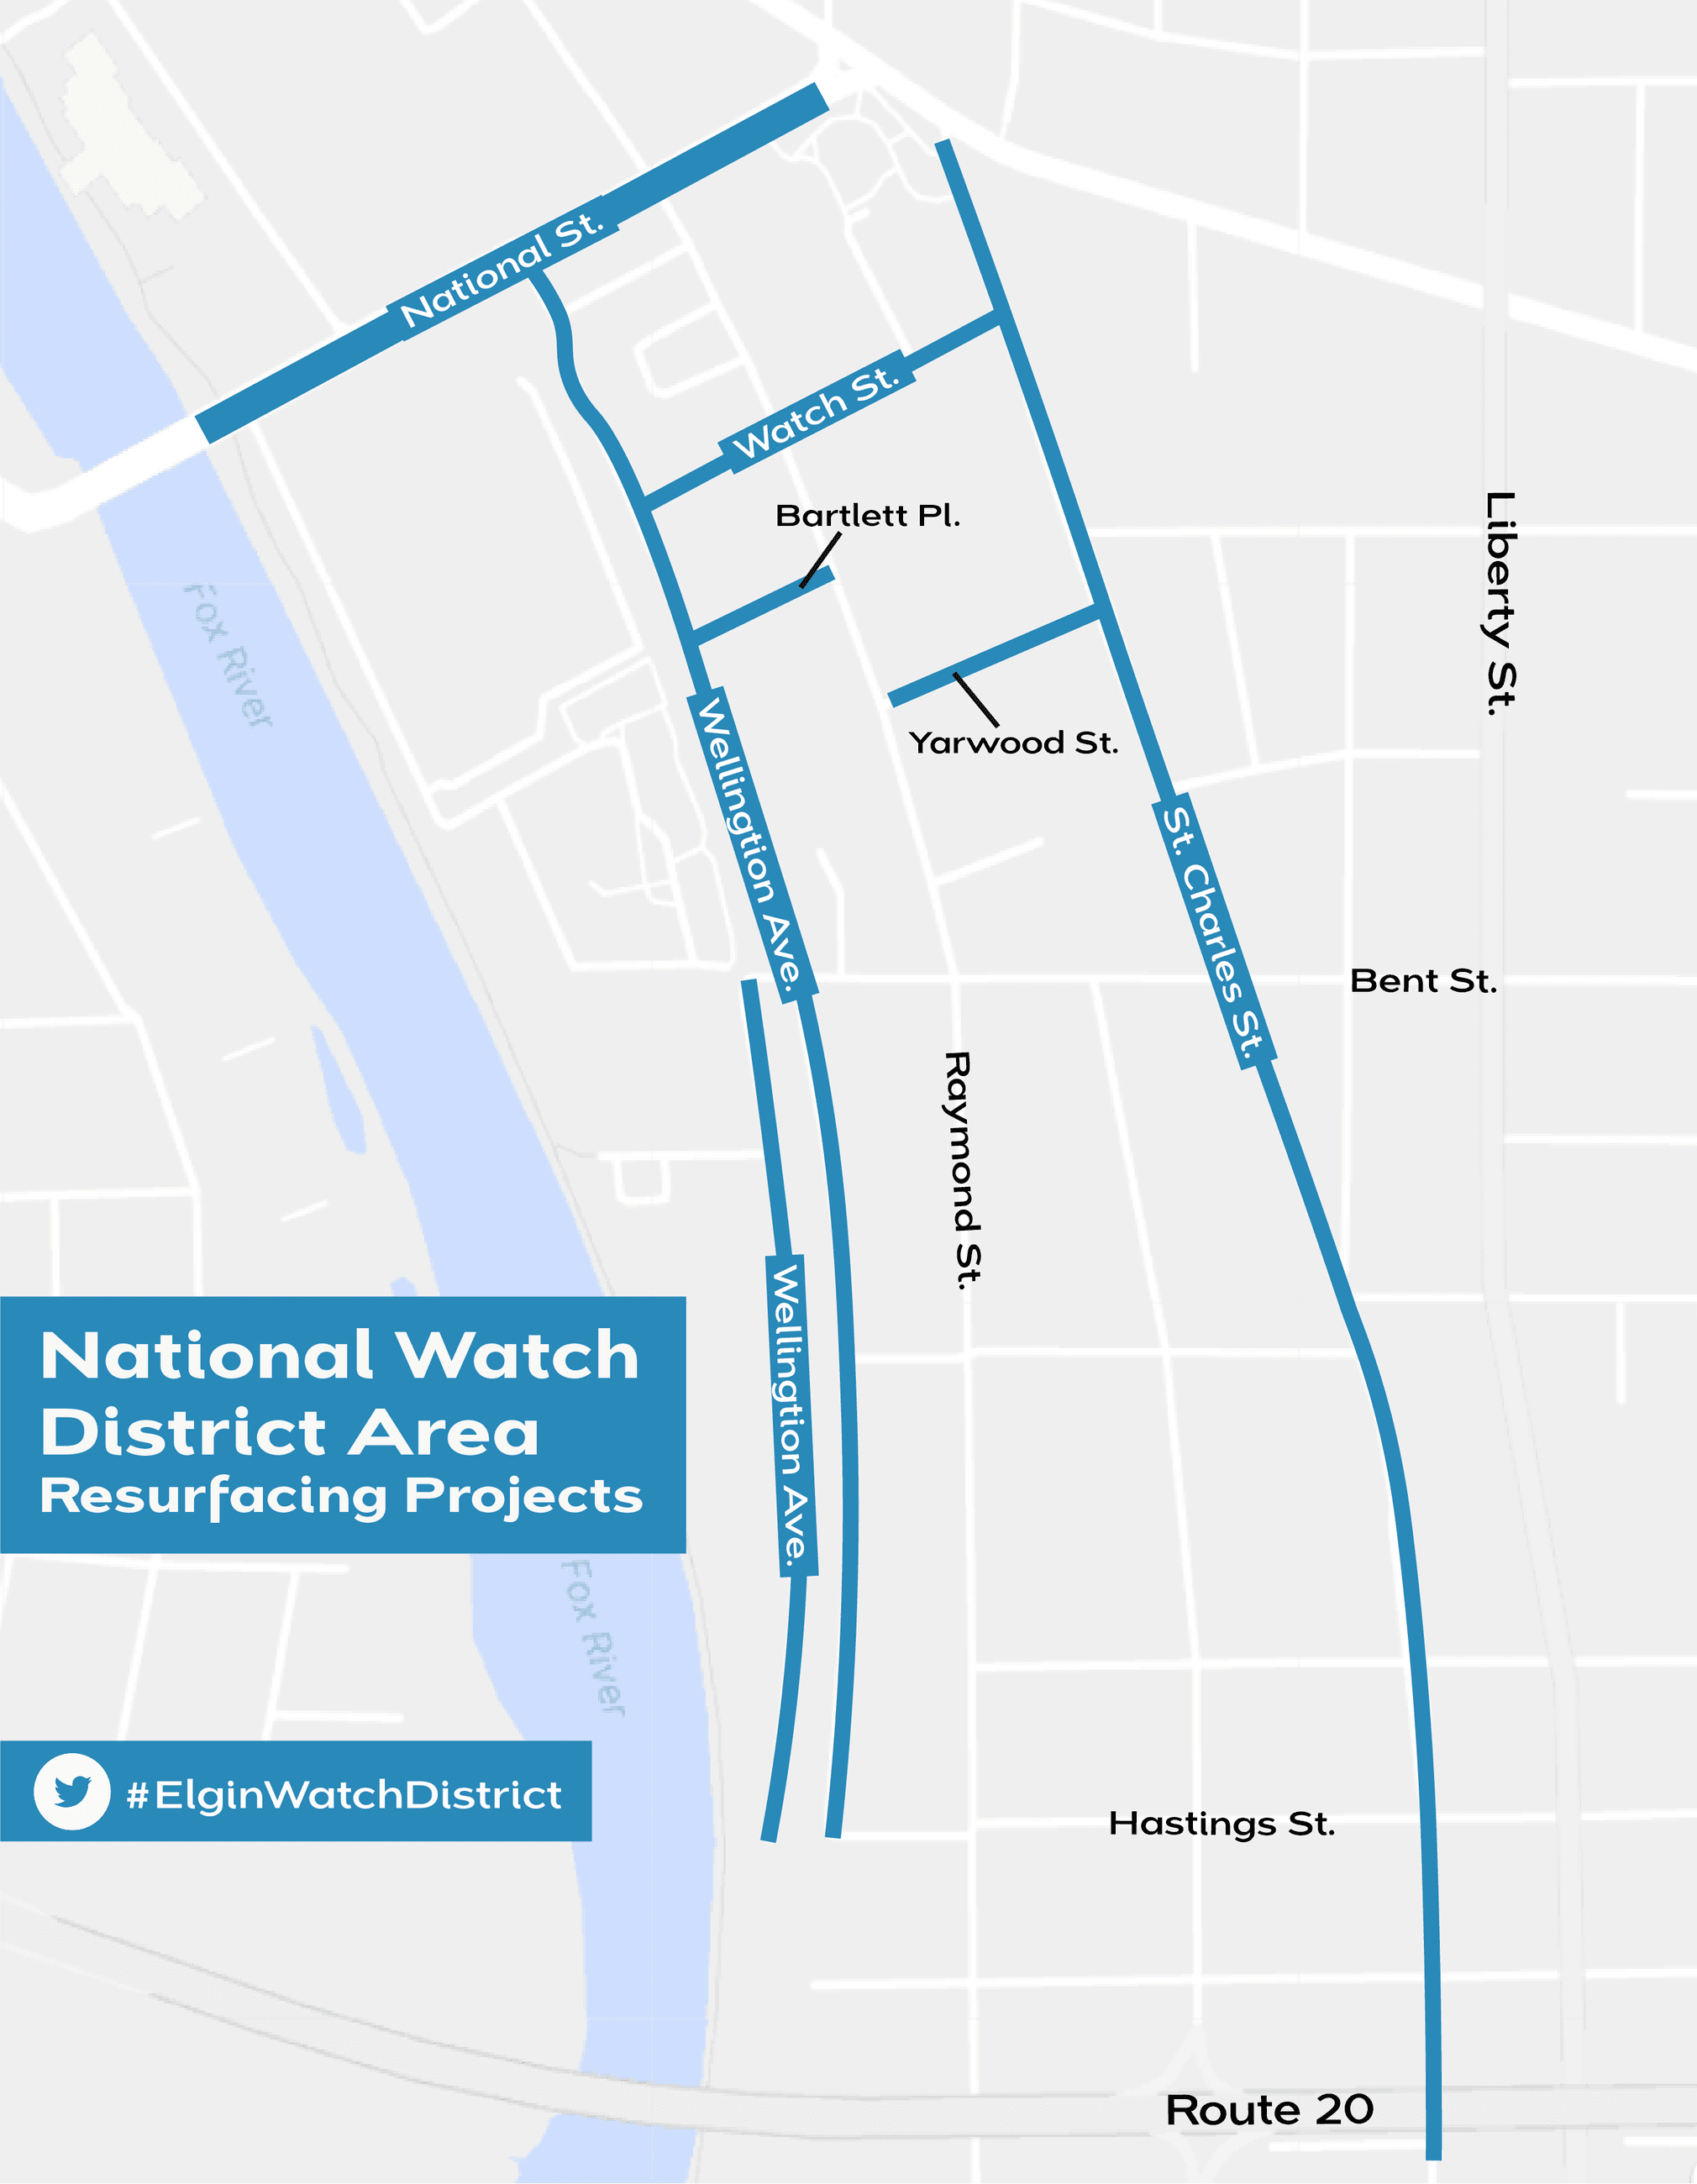 Map of the collector streets to be resurfaced in the Elgin National Watch District Area